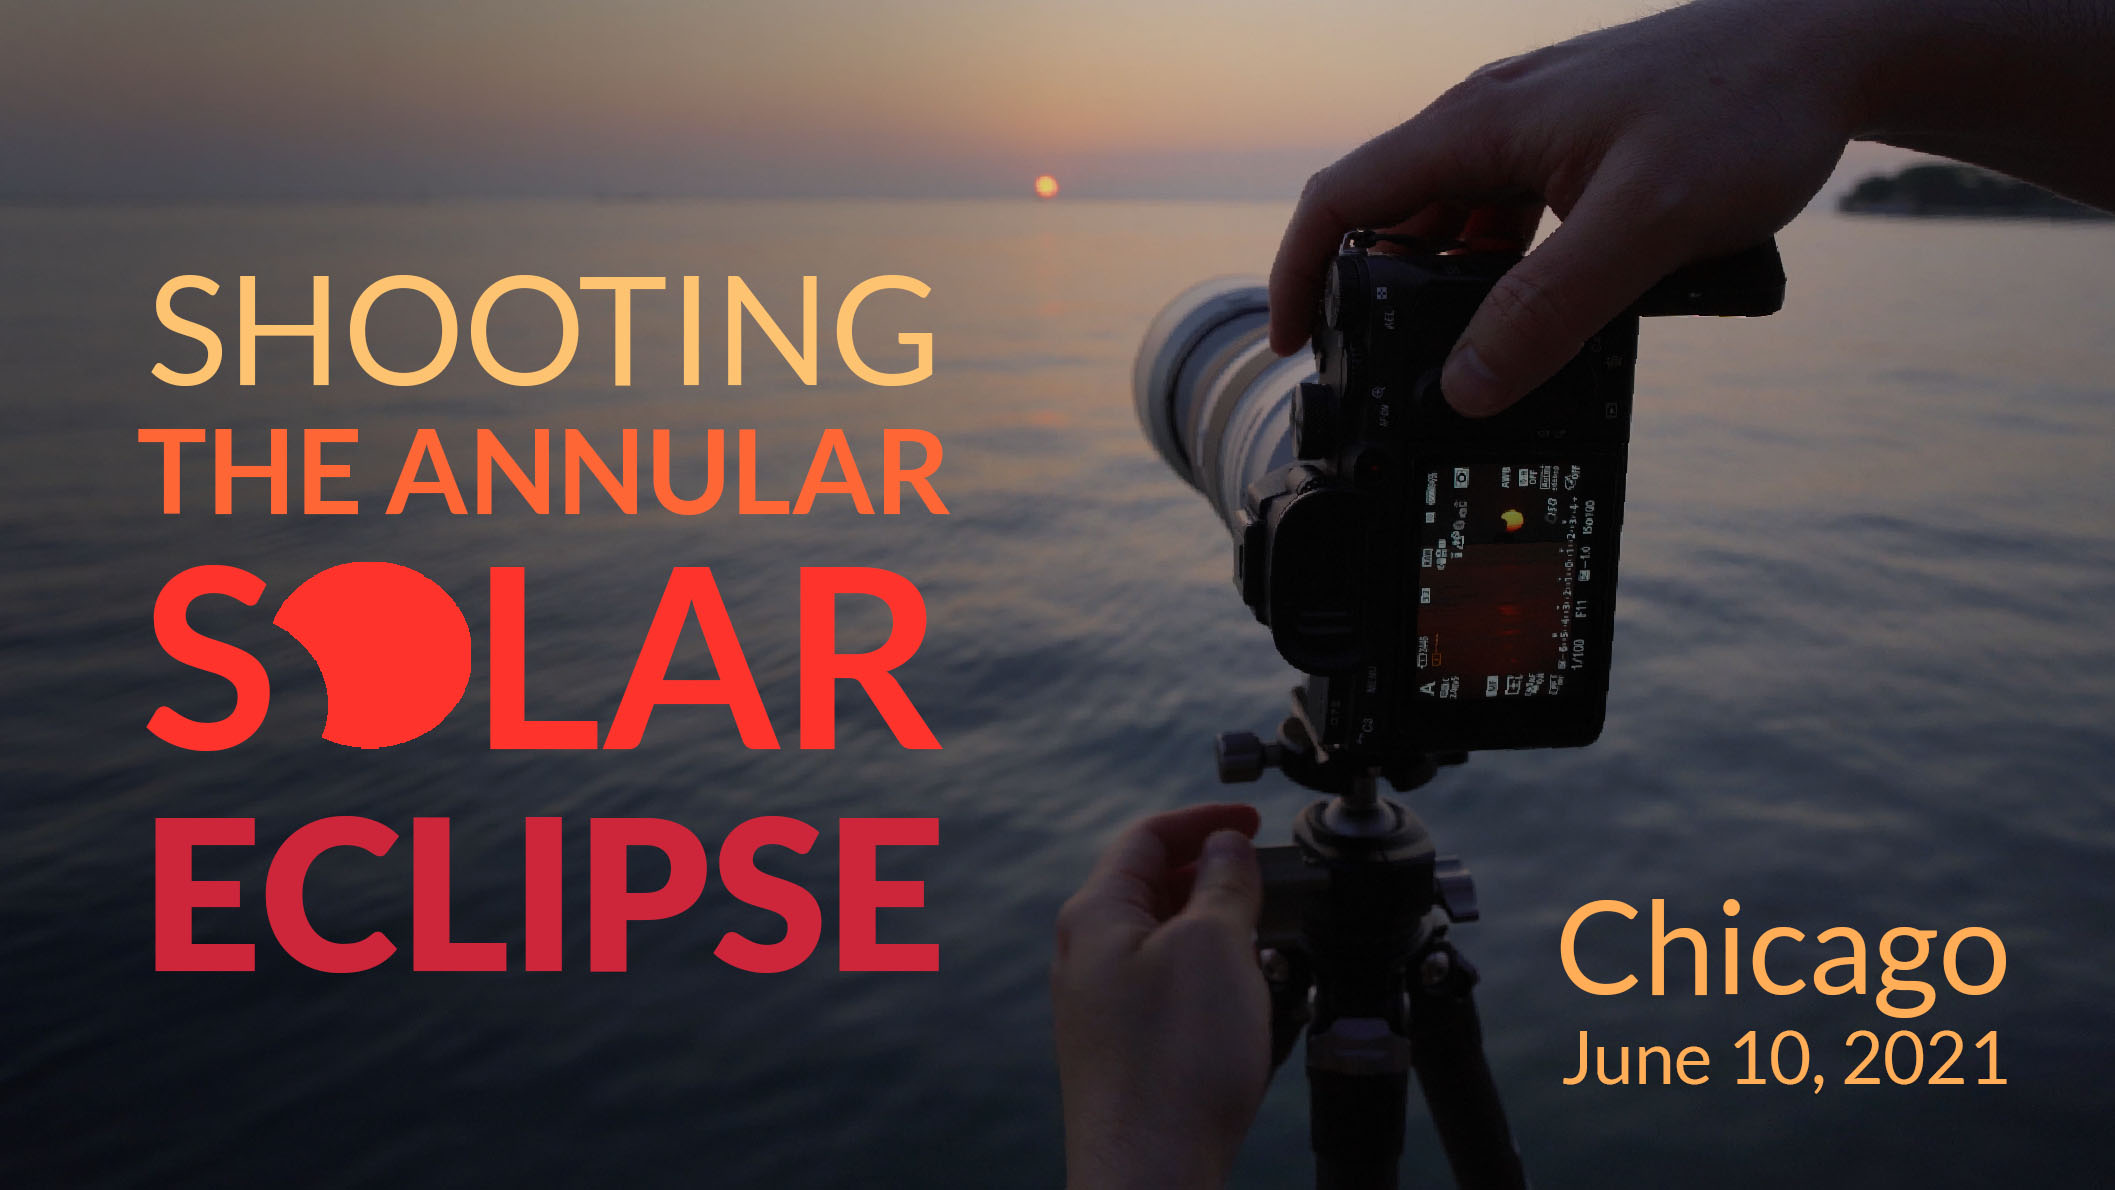 Shooting the Annular Solar Eclipse | Chicago | June 10, 2021